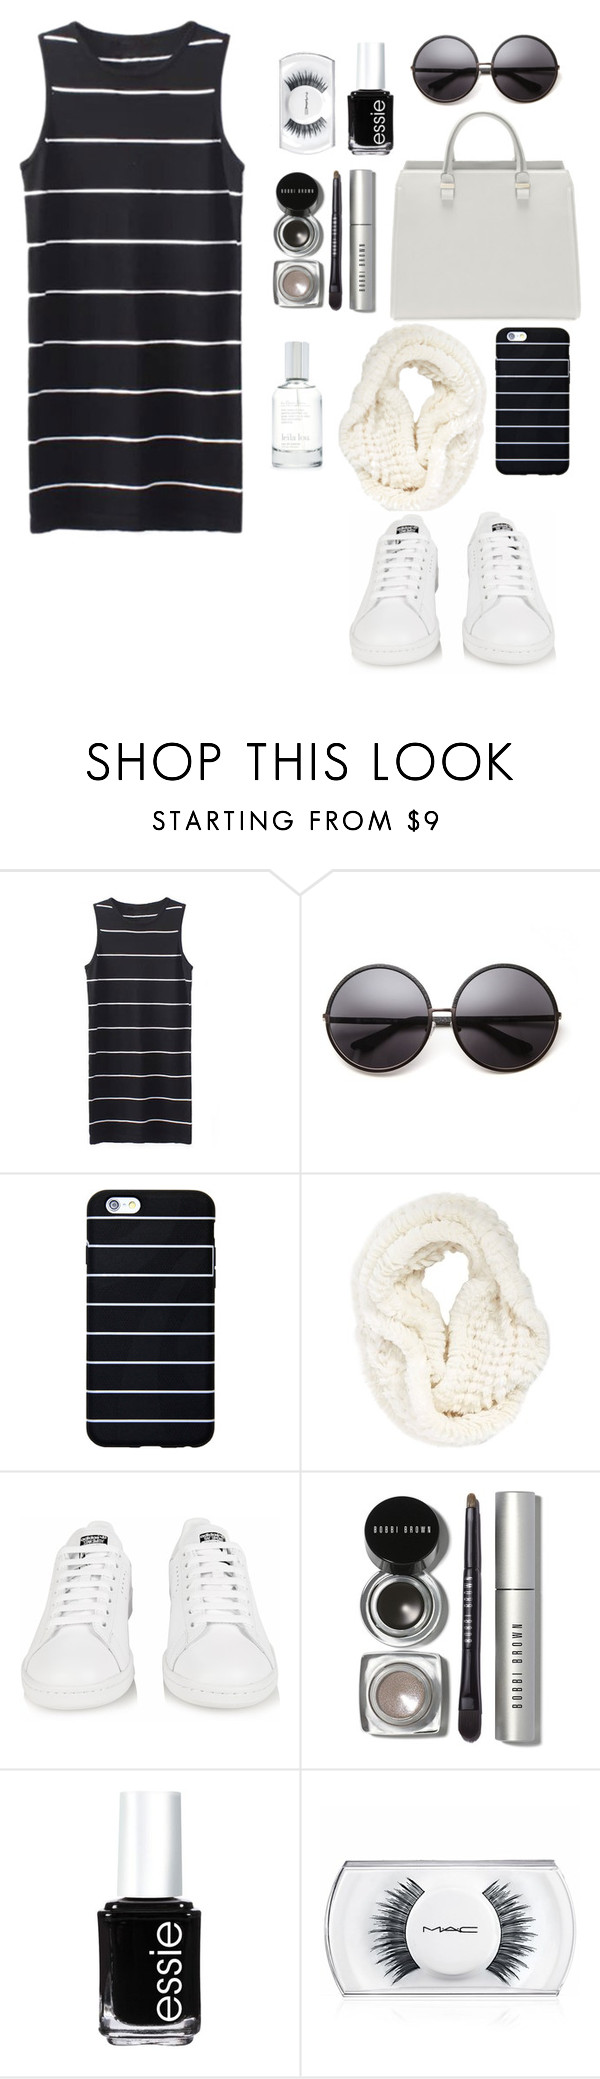 """""""Untitled #625"""" by soosoali ❤ liked on Polyvore featuring House of Harlow 1960, La Fiorentina, adidas, Bobbi Brown Cosmetics, Essie, MAC Cosmetics and Splendid"""